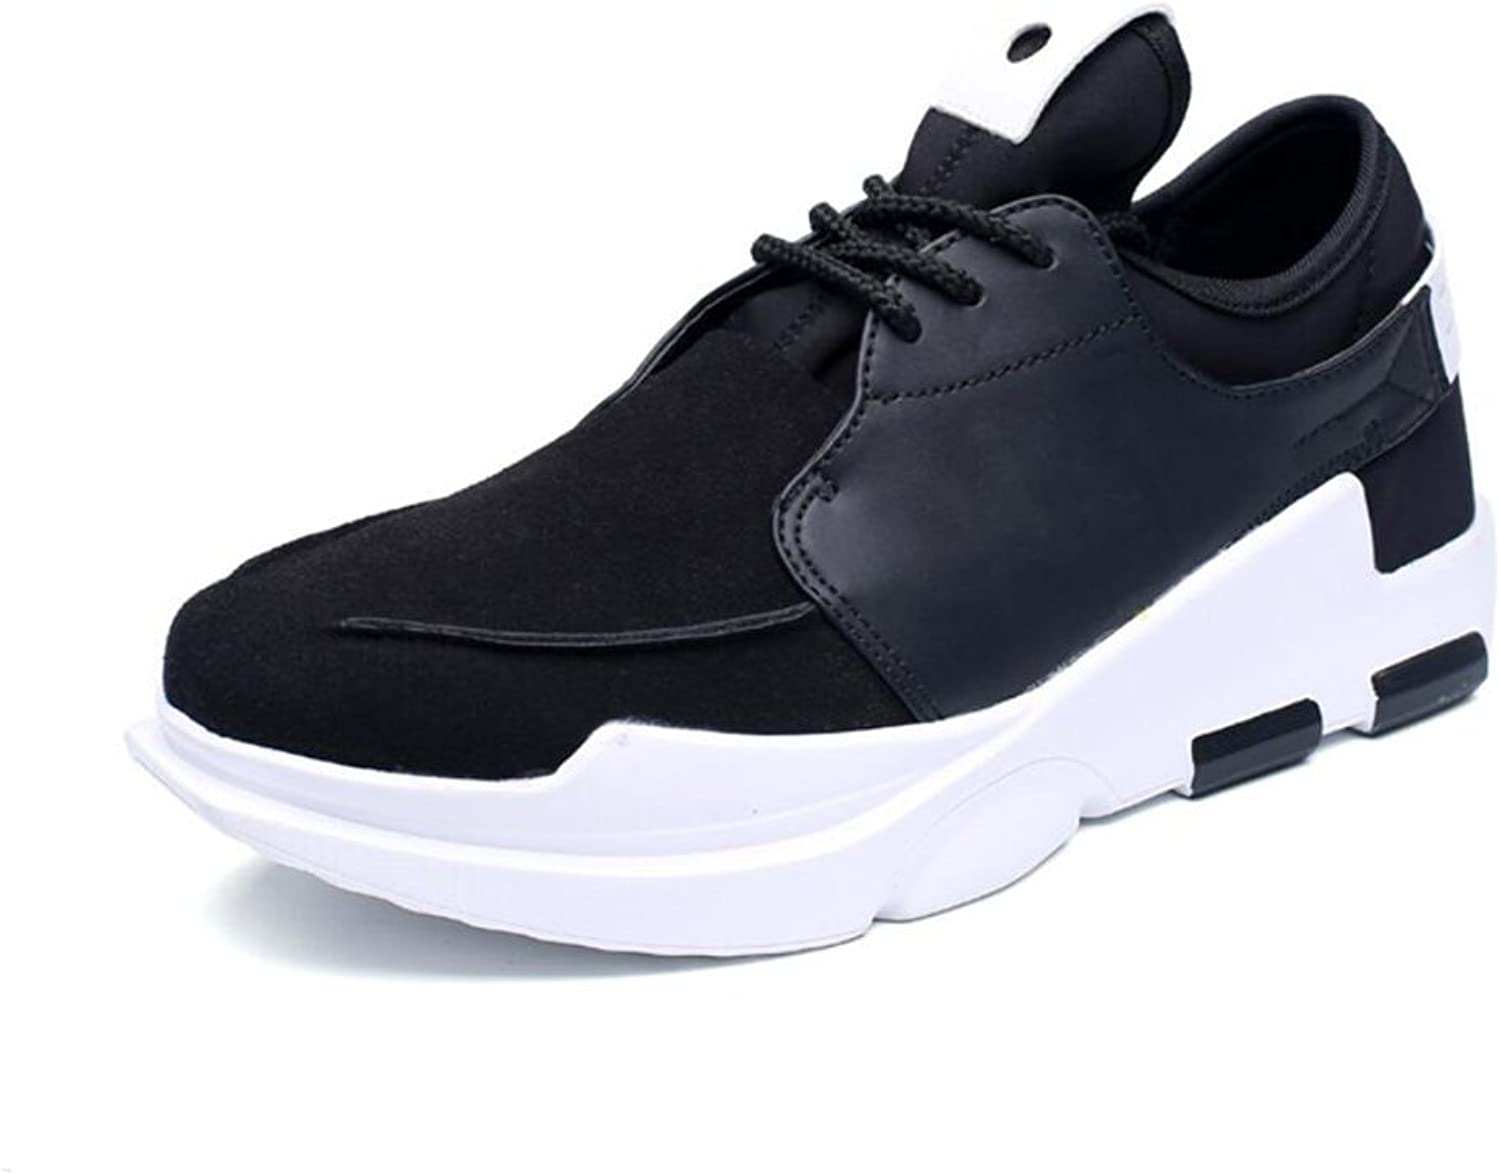 Men's shoes,Spring Fall,Breathable Low-Top Sneakers,Non-Slip Travel,Light Soles,Comfort Running shoes,Lightweight Walking shoes, Athletic shoes,Office Red, Black, Black White